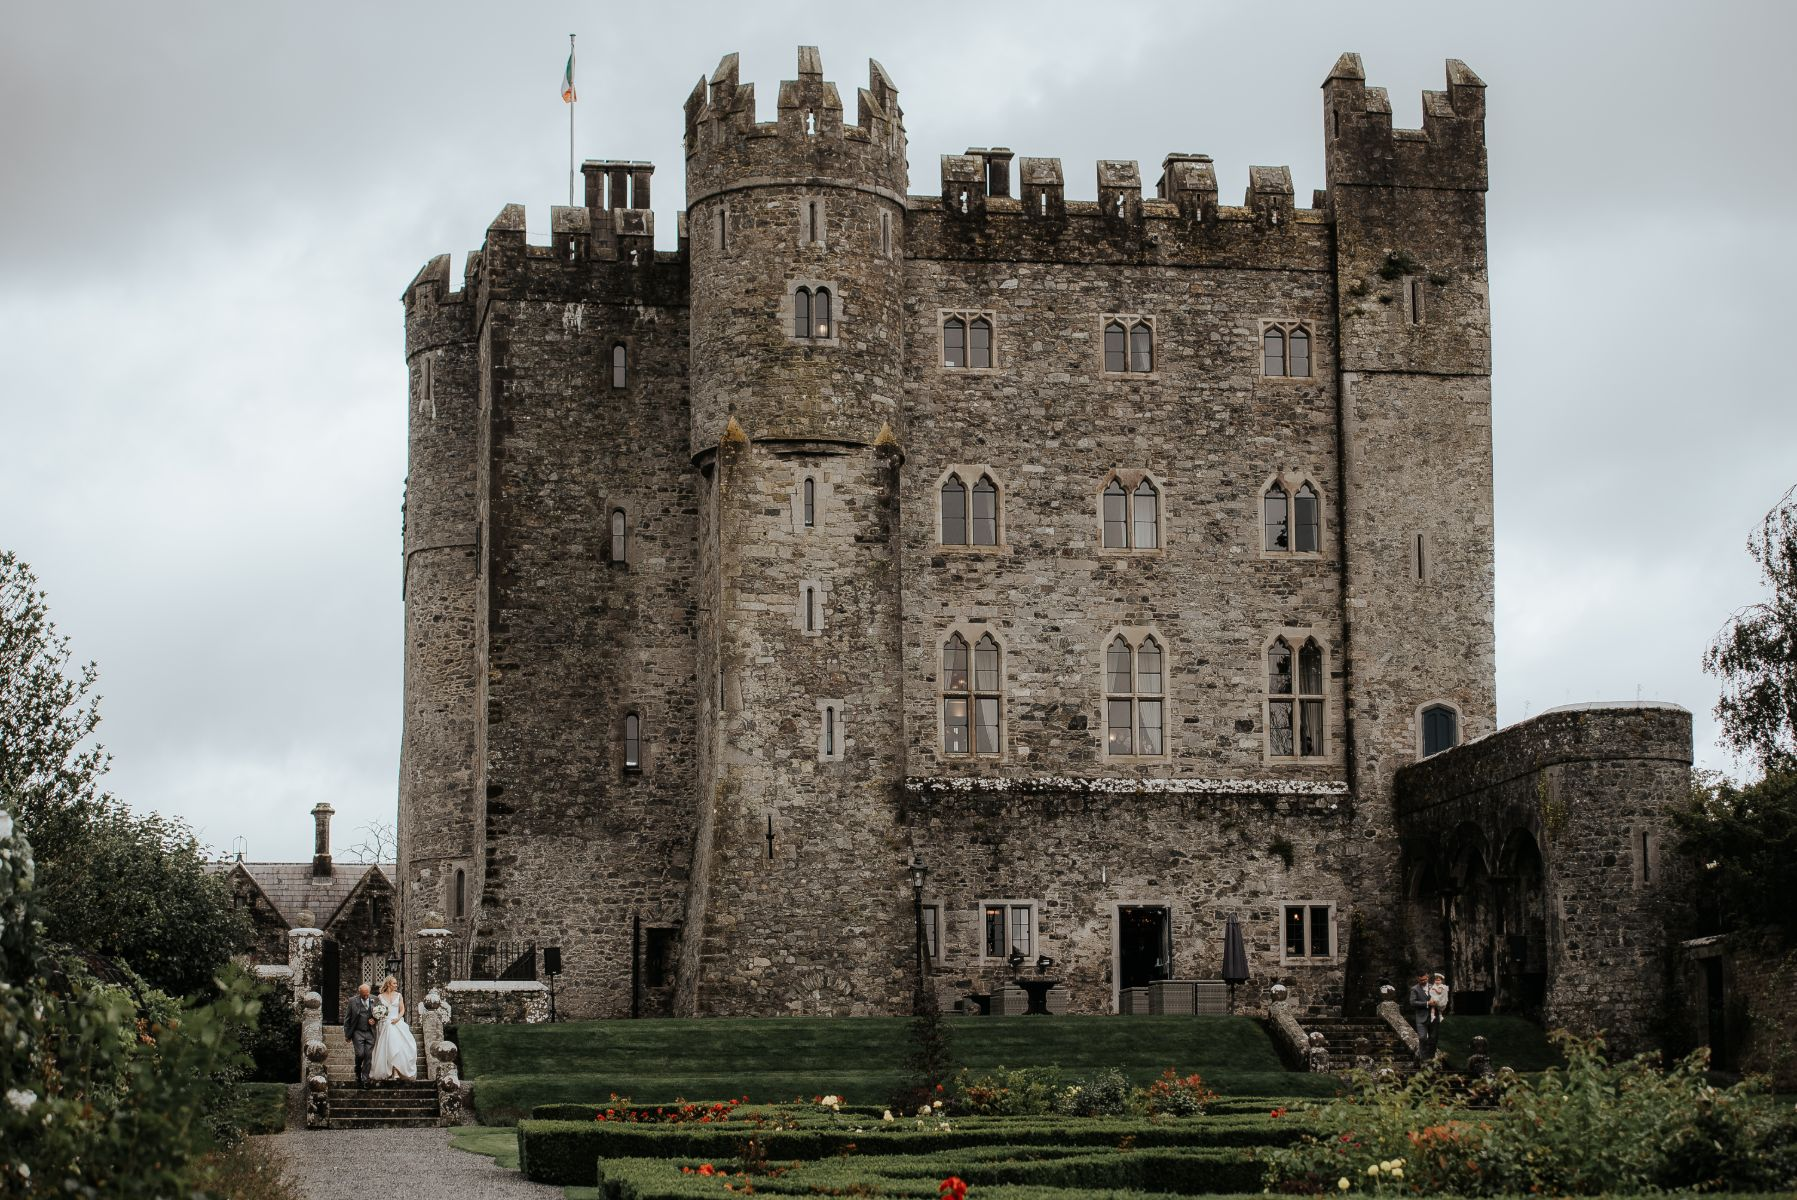 Castle in Ireland prior to hosting a wedding celebration.